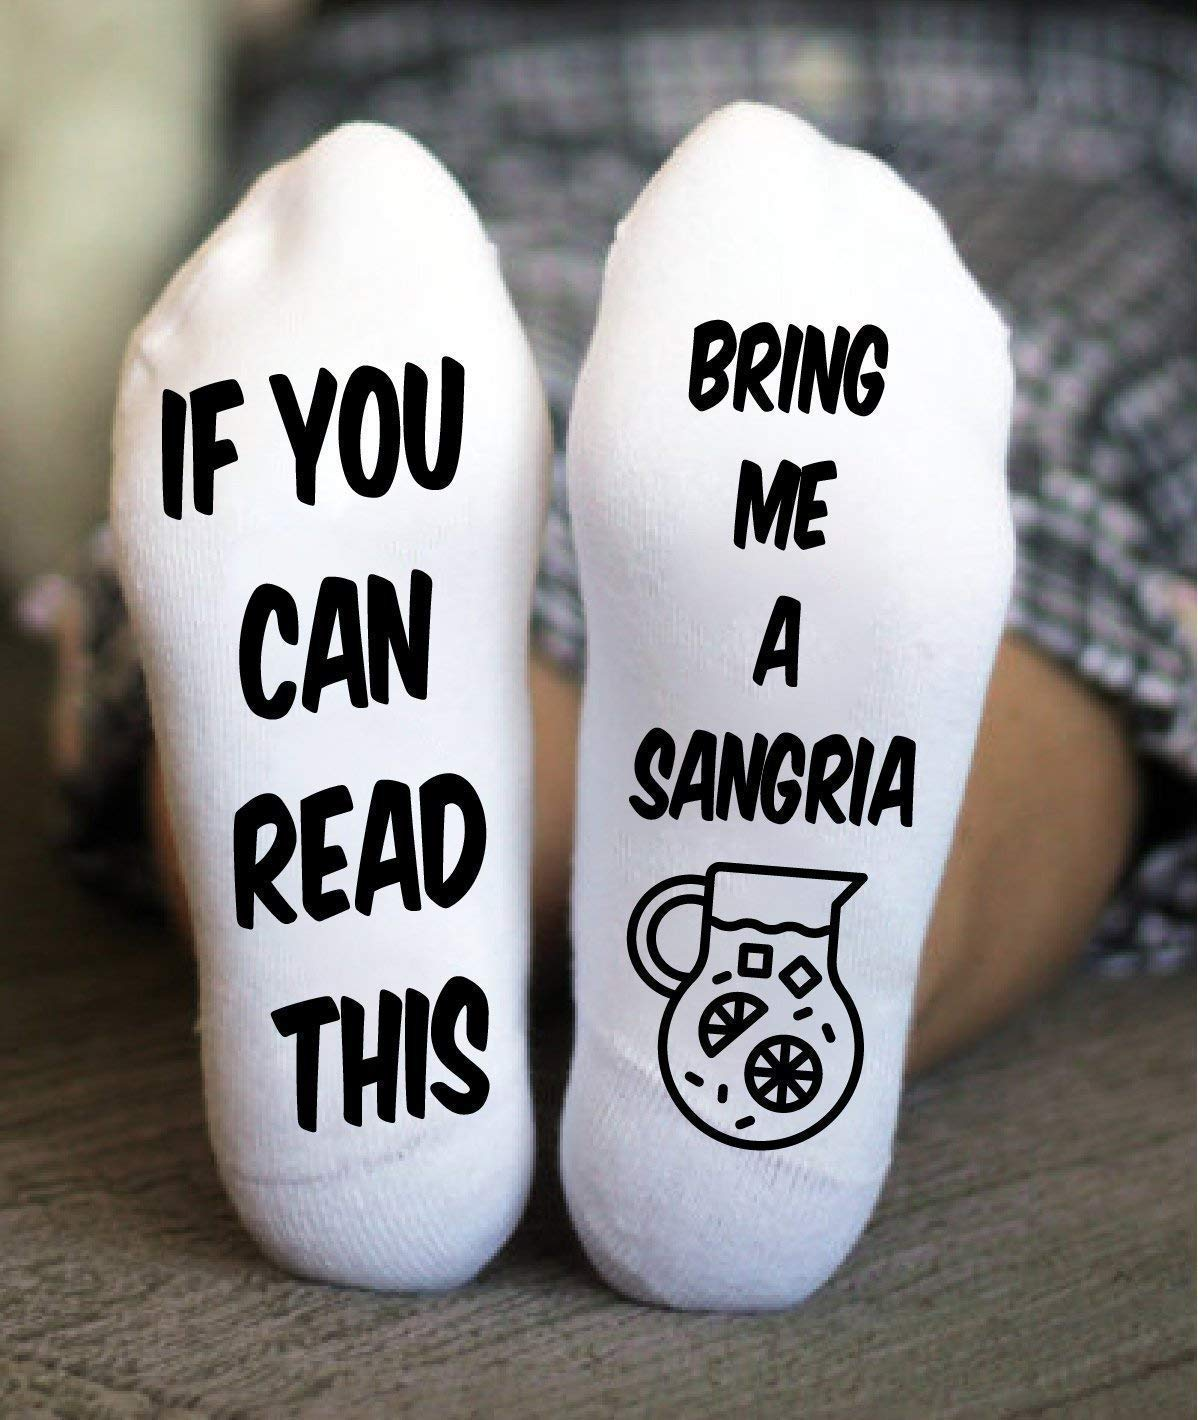 If You Can Read This Bring Me Socks Sangria Funny Gift